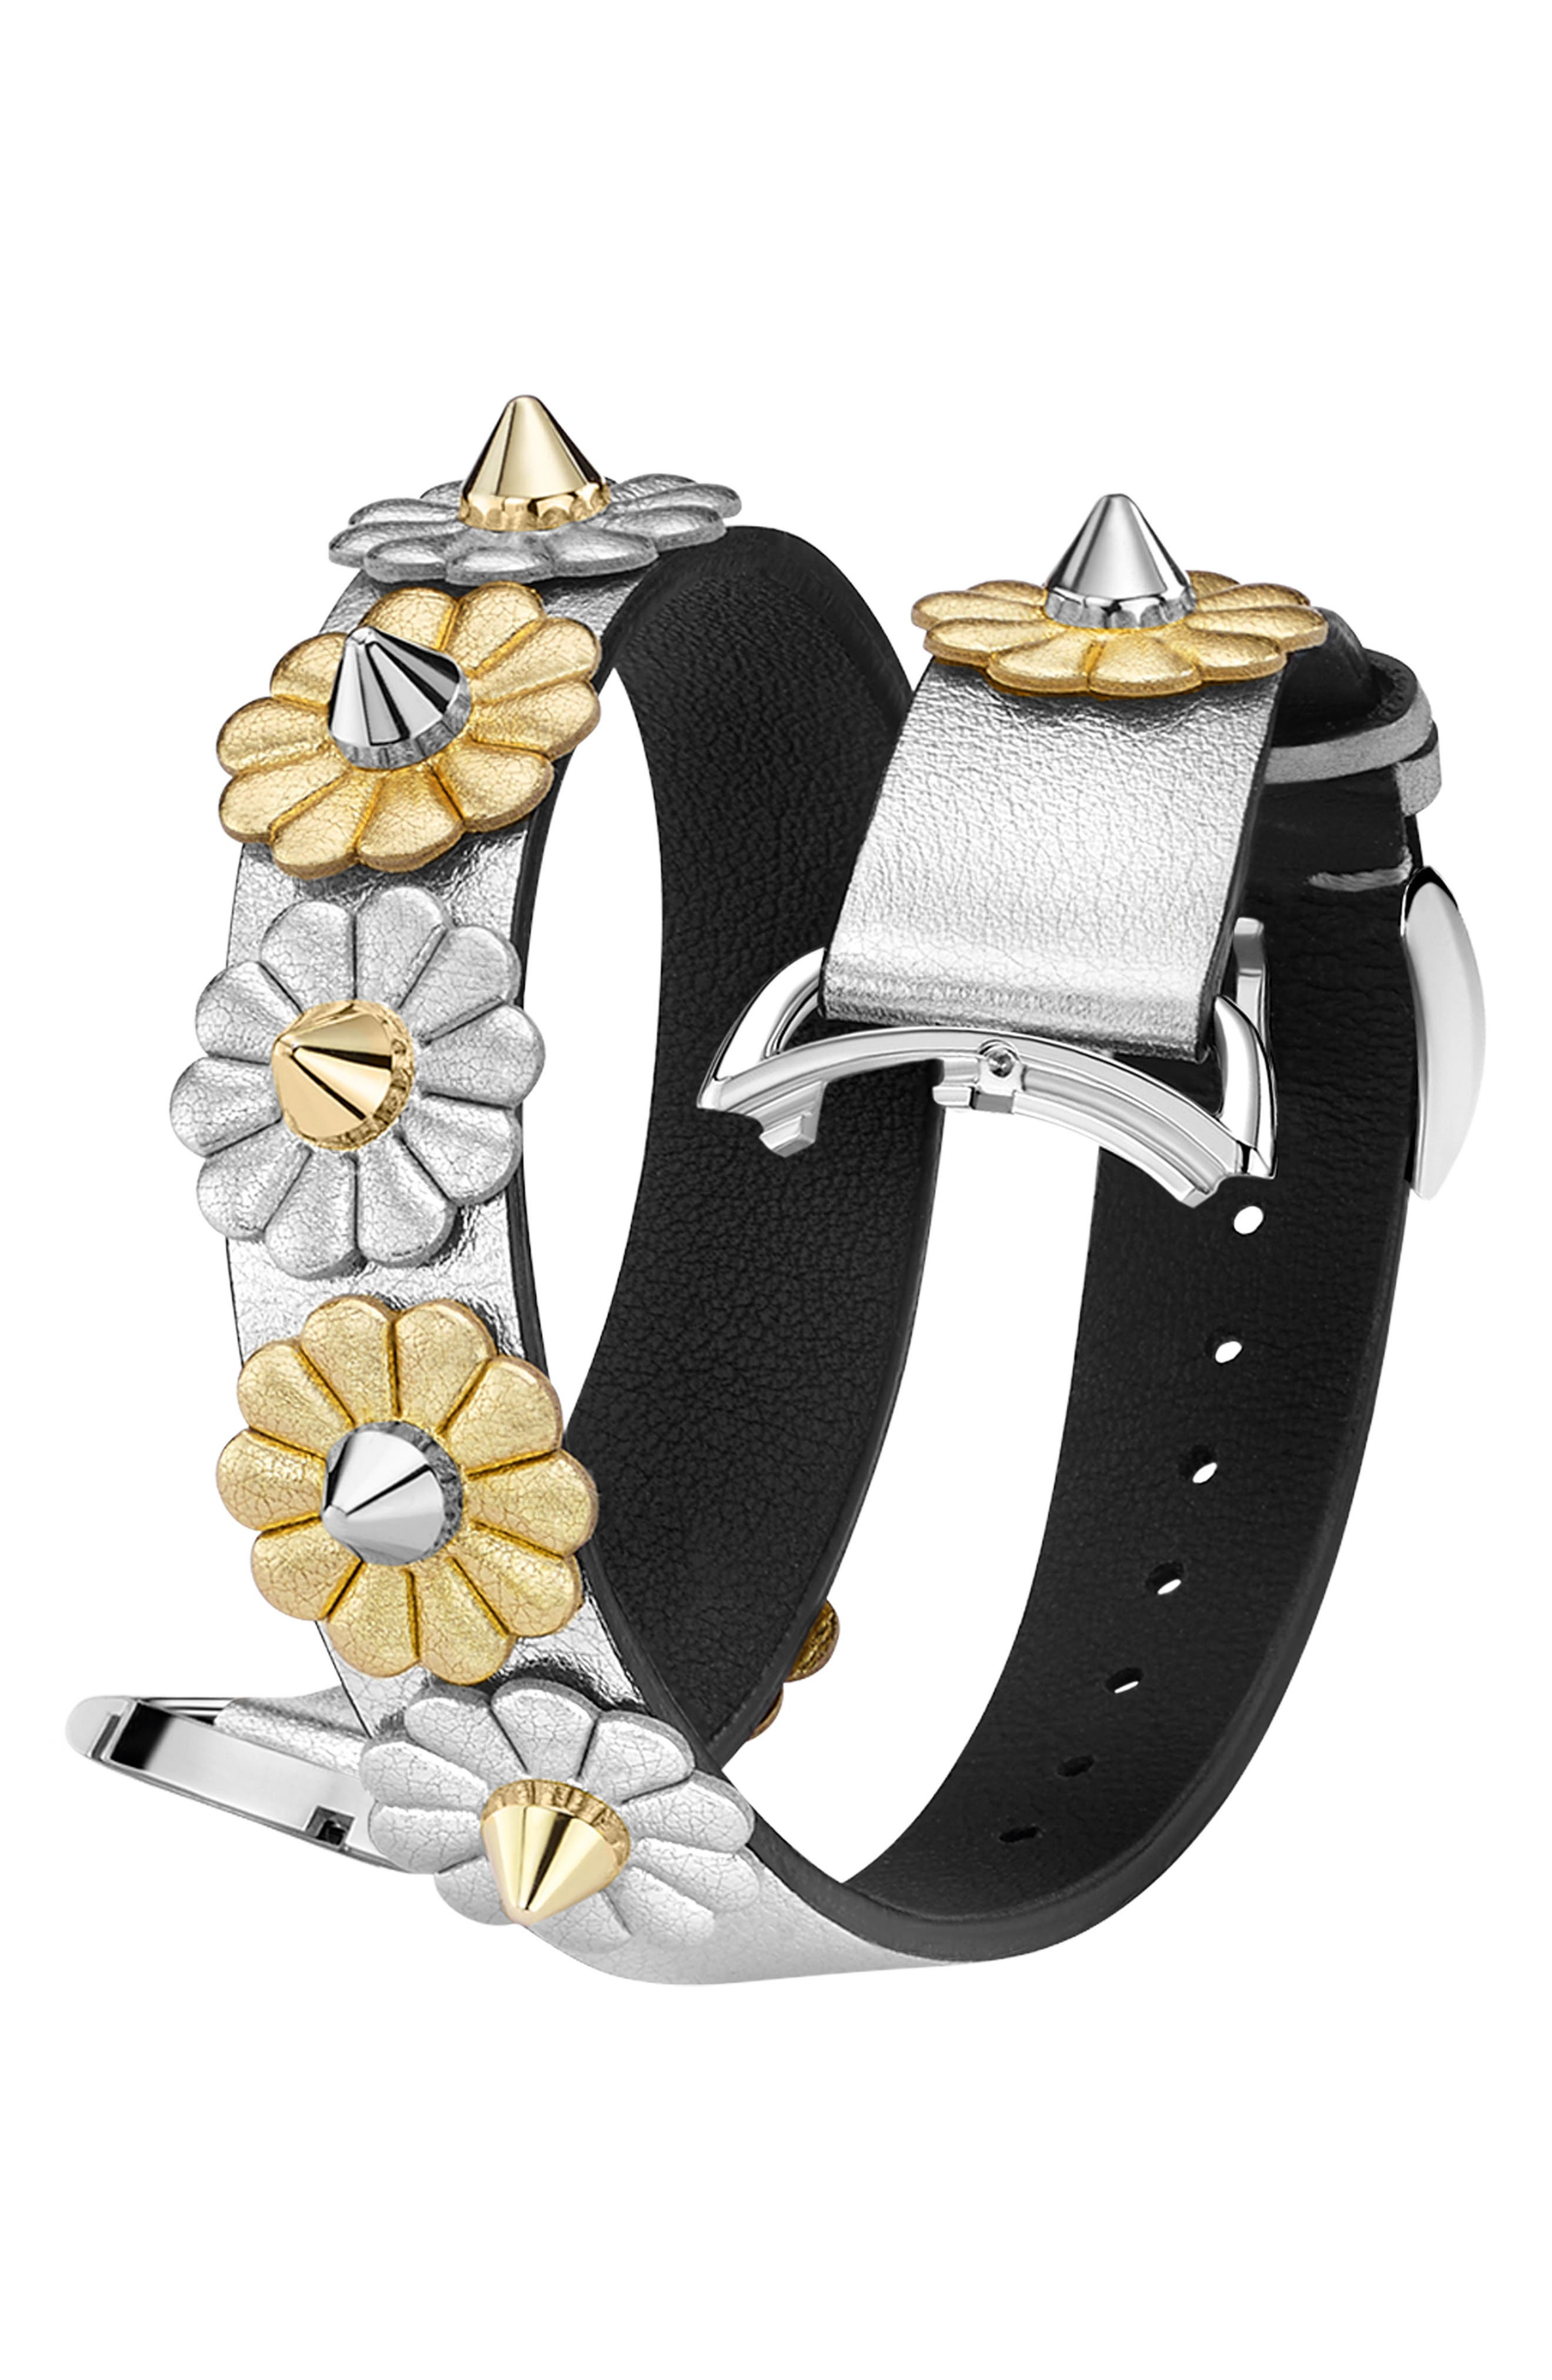 Selleria 17mm Embellished Leather Watch Strap,                         Main,                         color, Silver/ Gold